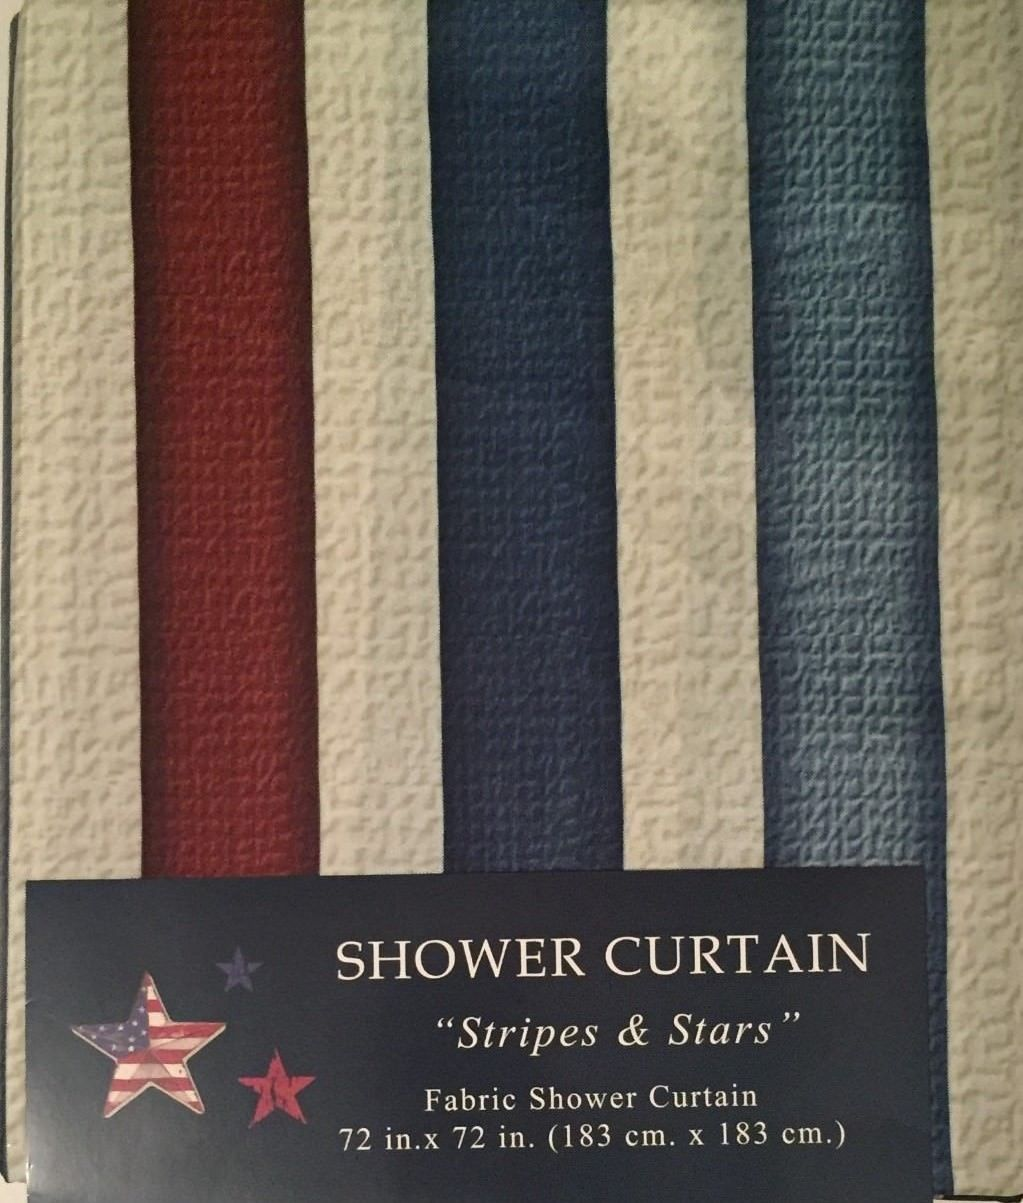 Americana Patriotic Stripes And Stars Fabric Shower Curtain Anns Home Decor More